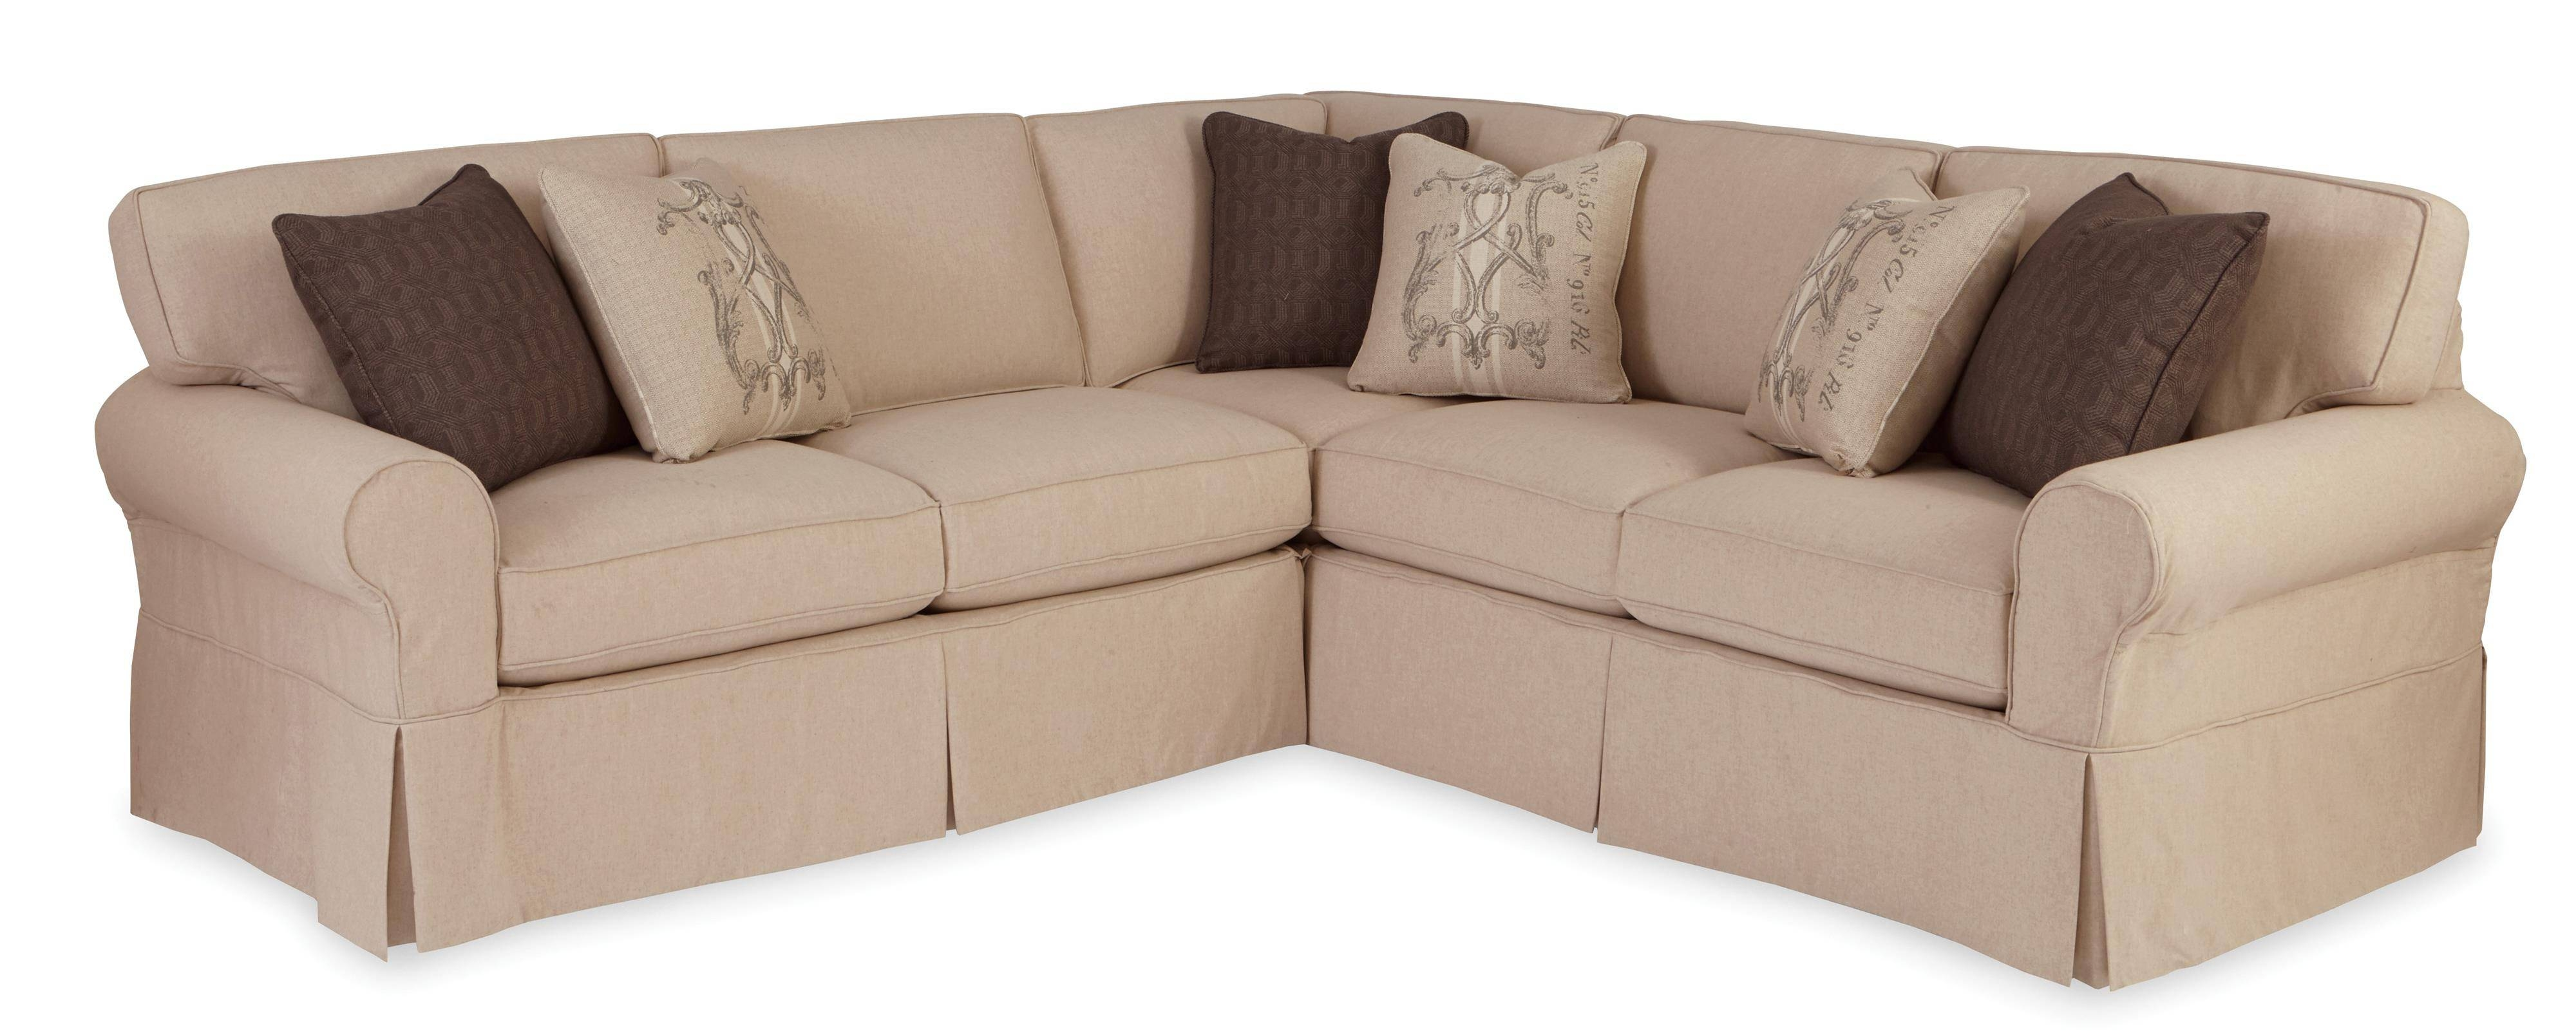 Plain Couch Covers Big Lots Sofas Centerbig And Sectionals To with Big Lots Sofa (Image 17 of 30)